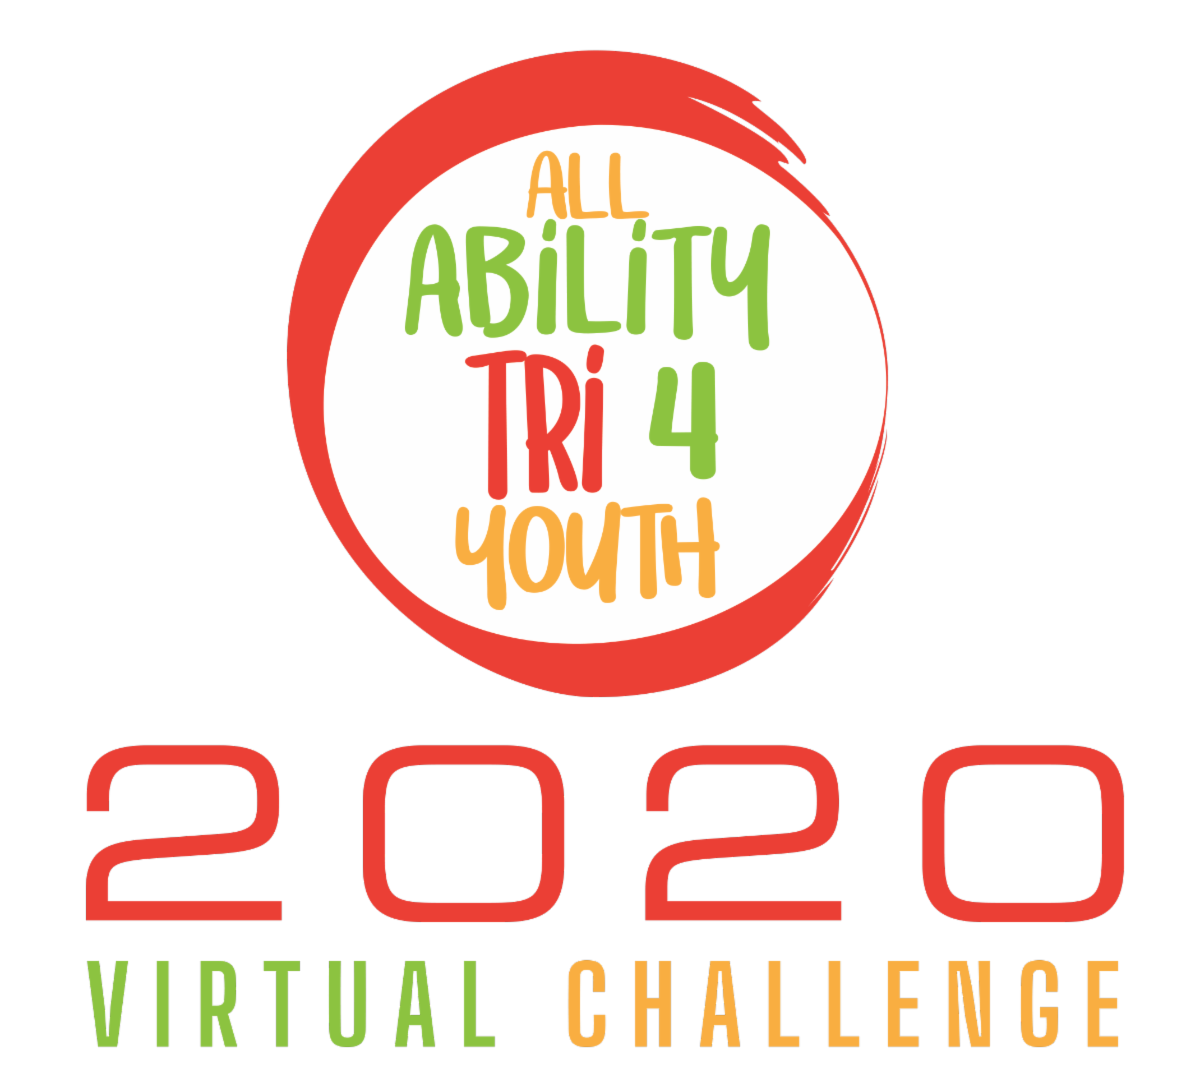 All Ability Tri4Youth 2020 Virtual Challenge logo